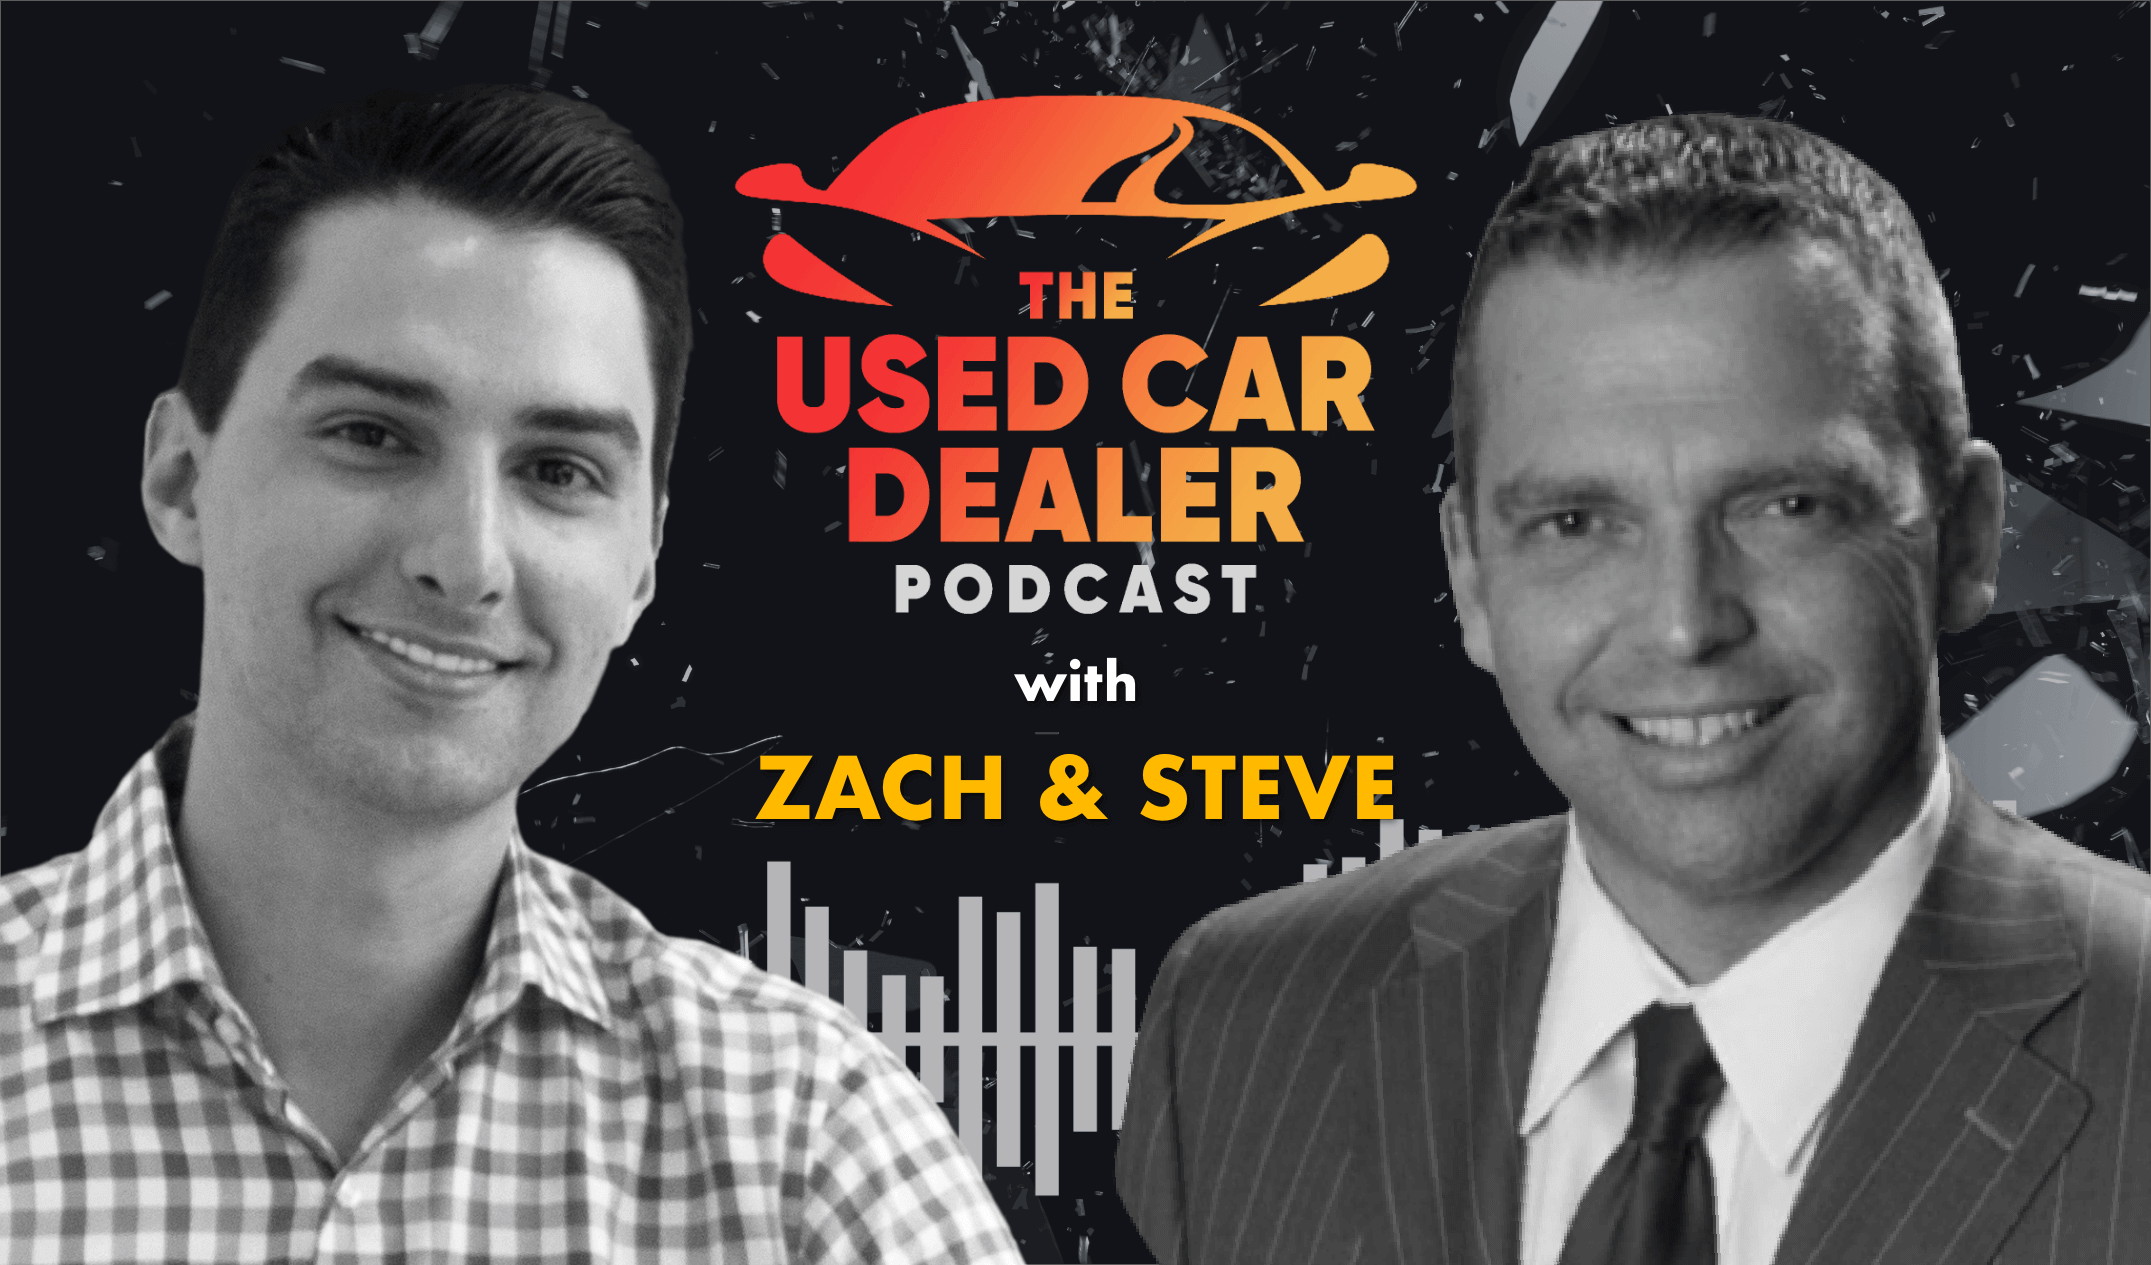 Interview with a Used Car Dealer on Challenges and Success of 2020